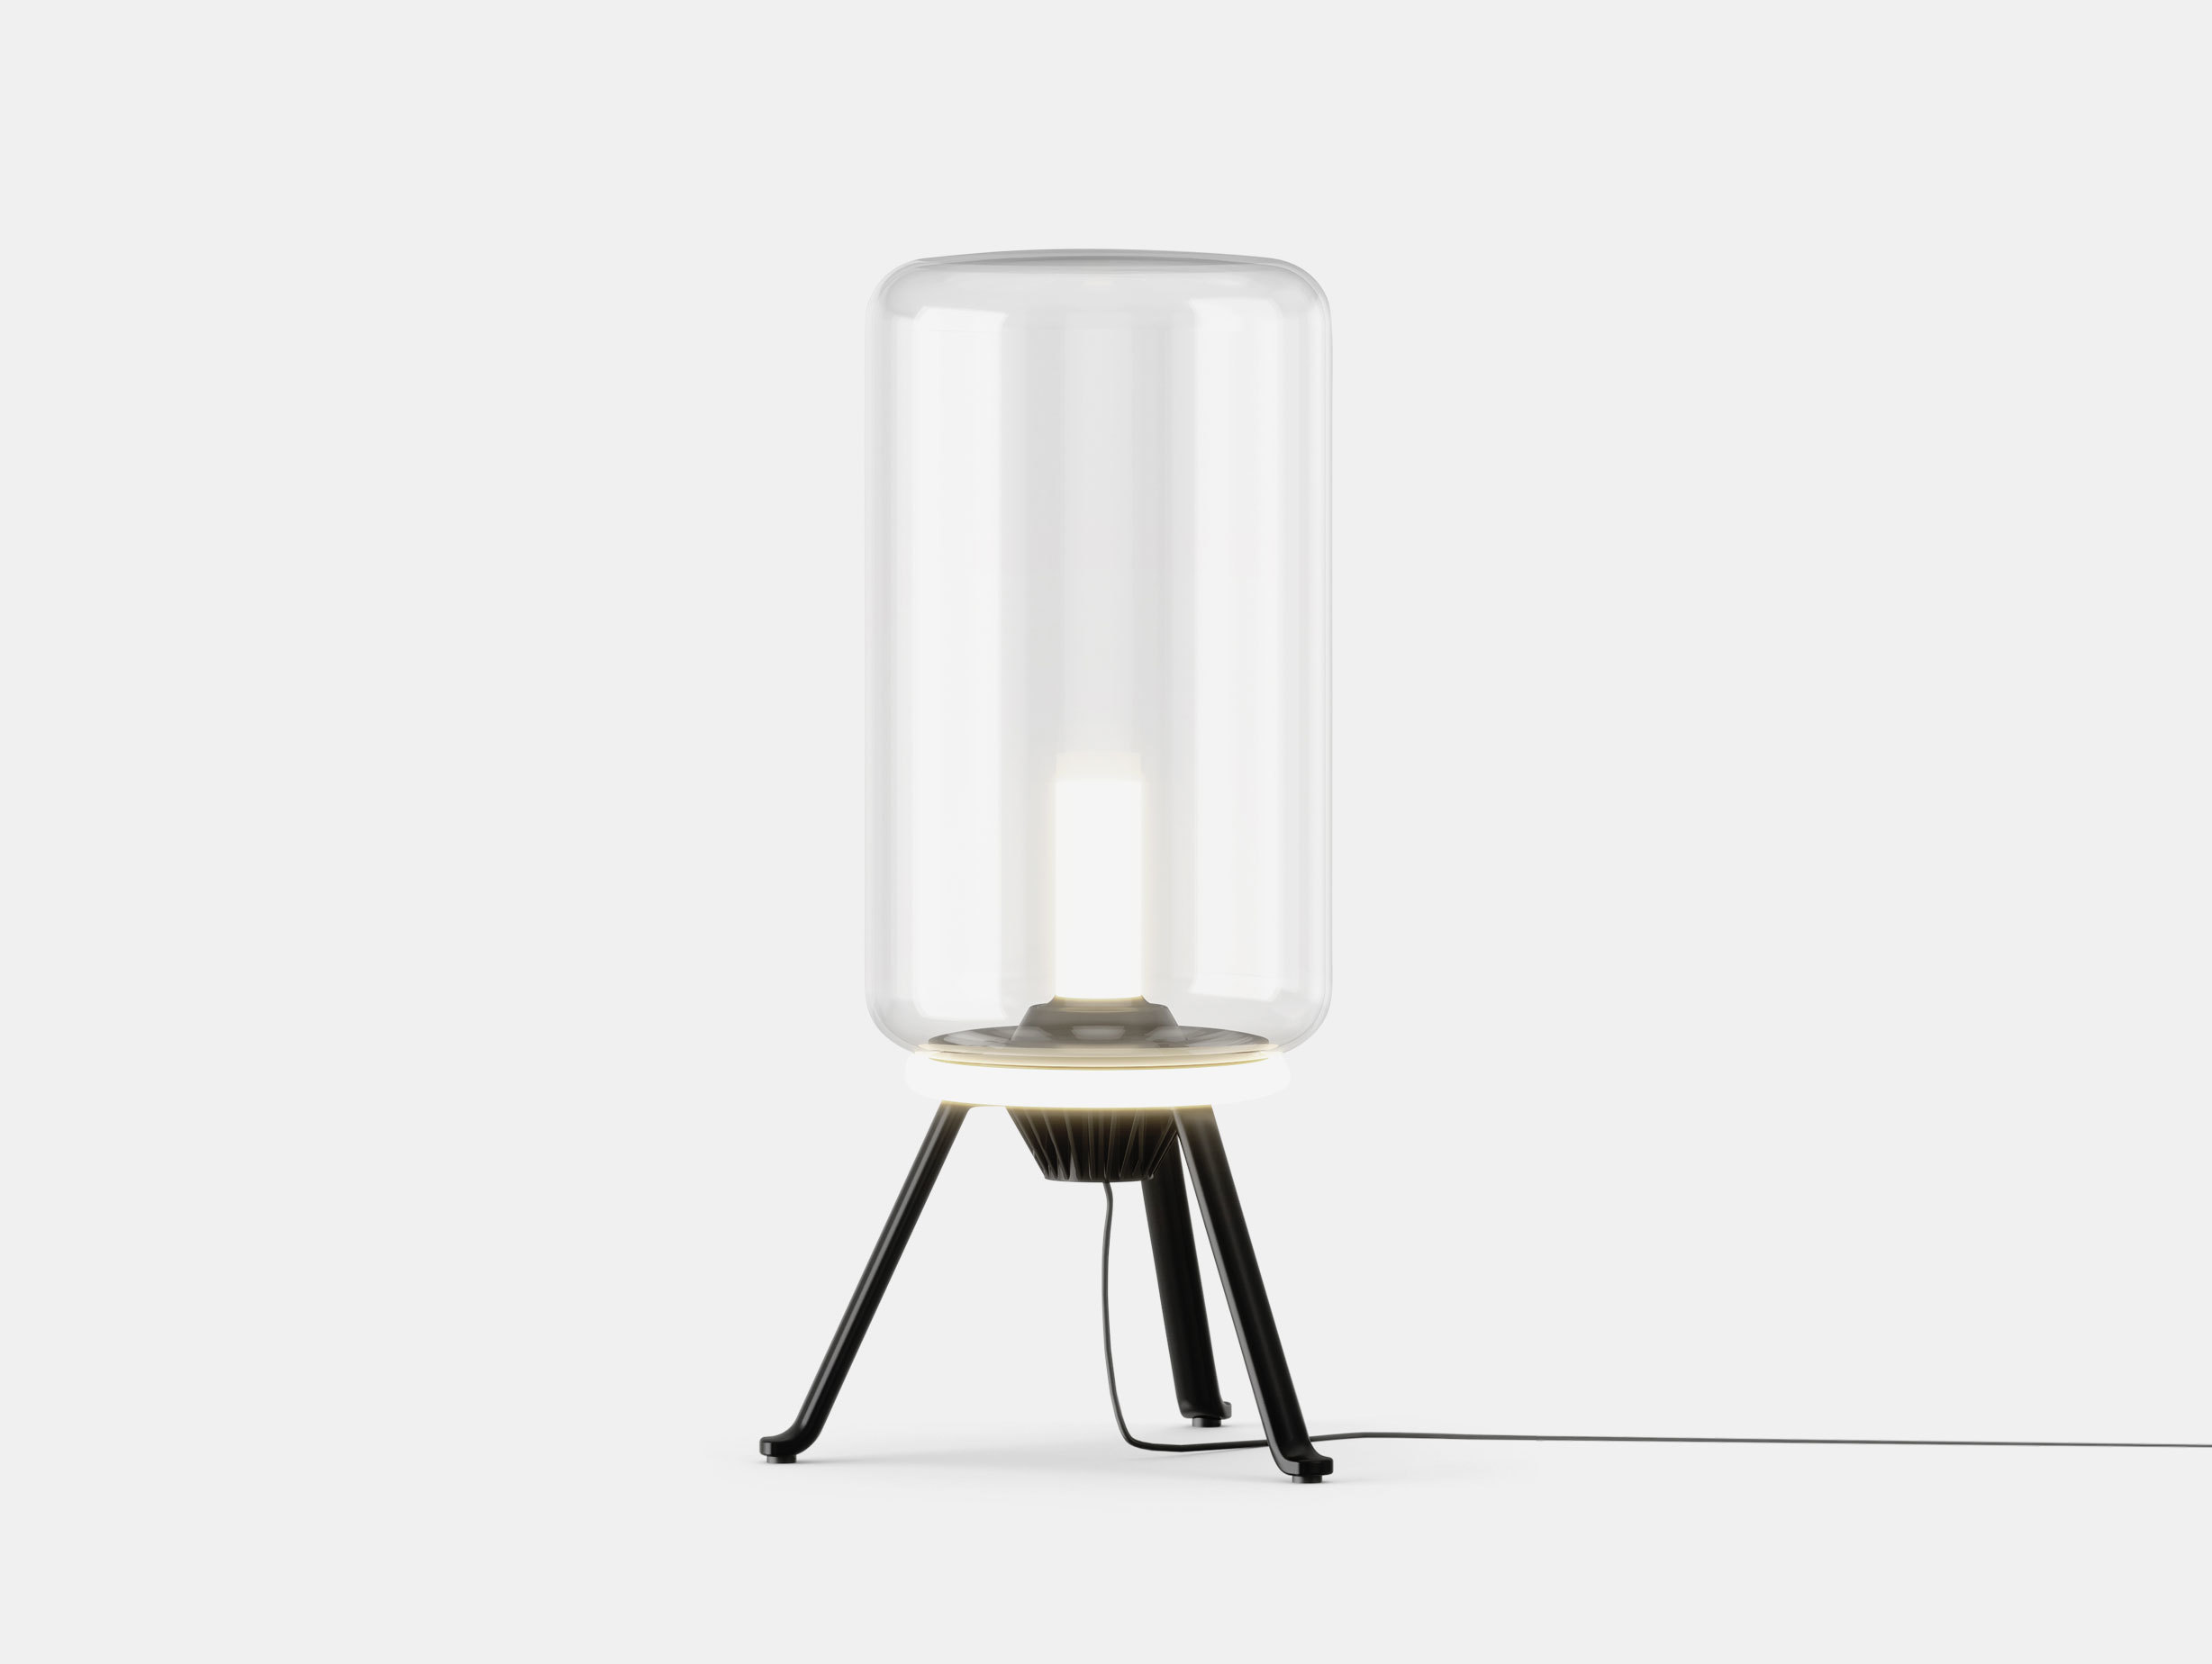 Flos Noctambule Table Light Konstantin Grcic